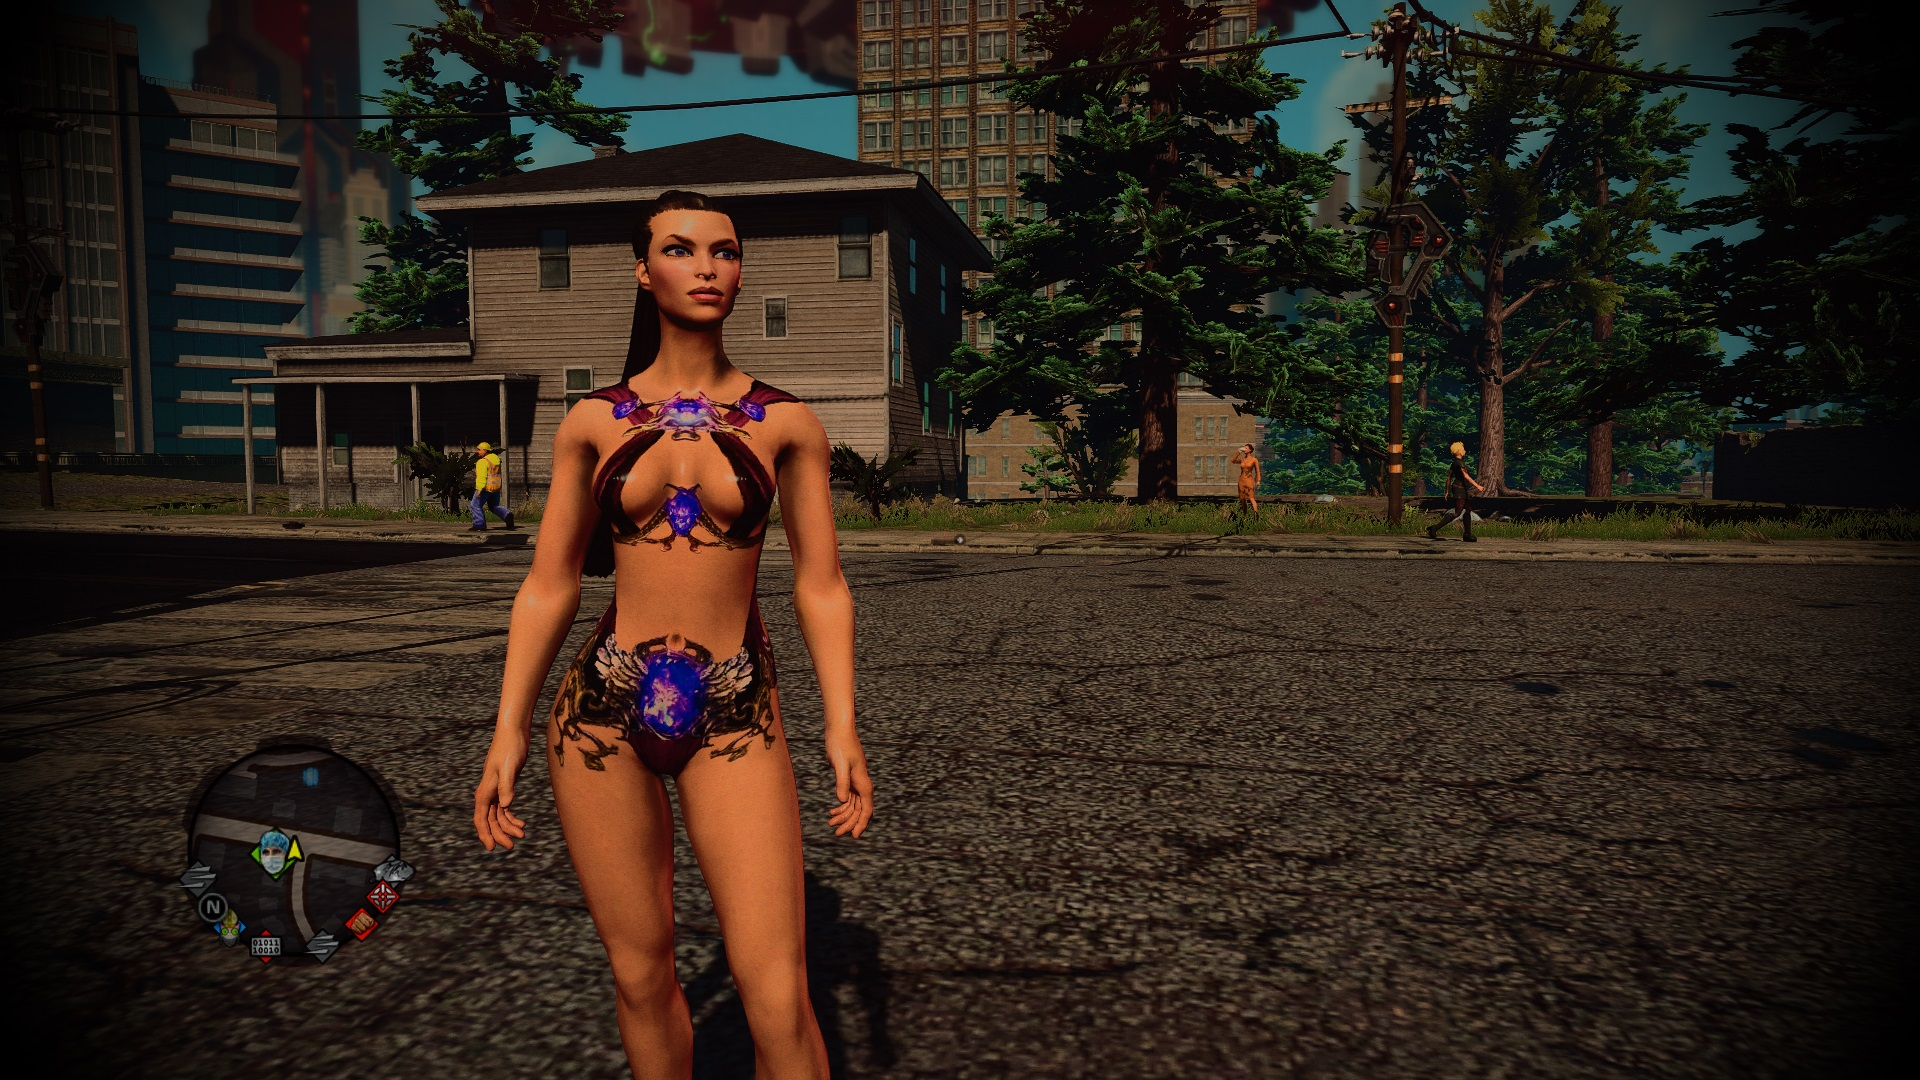 Saints row naked girls and boys